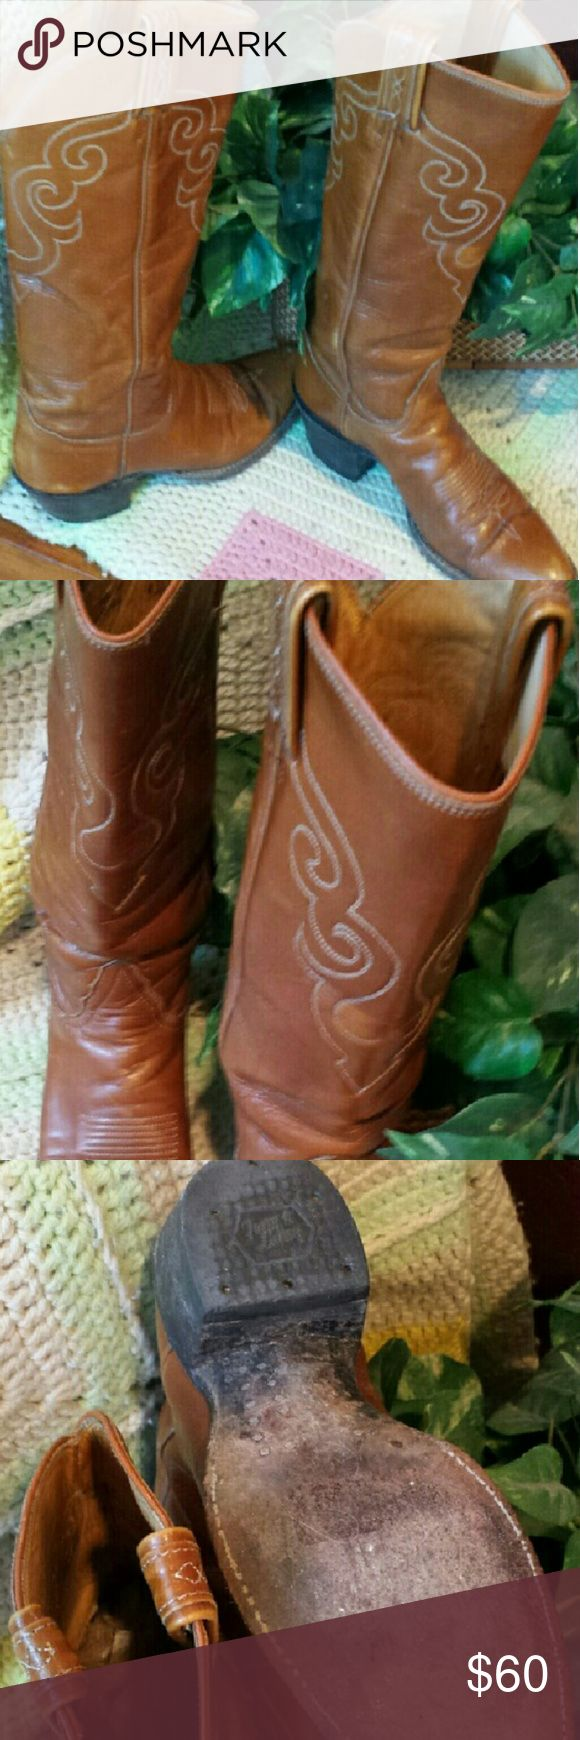 """Black label Tony Lama boots Vintage cowgirl boots. Distressed look. Shank ends just below knee. Boots have scuffs on toes but thats what makes them cowgirl boots. 2""""heel size 5. Tony Lama Shoes Heeled Boots"""